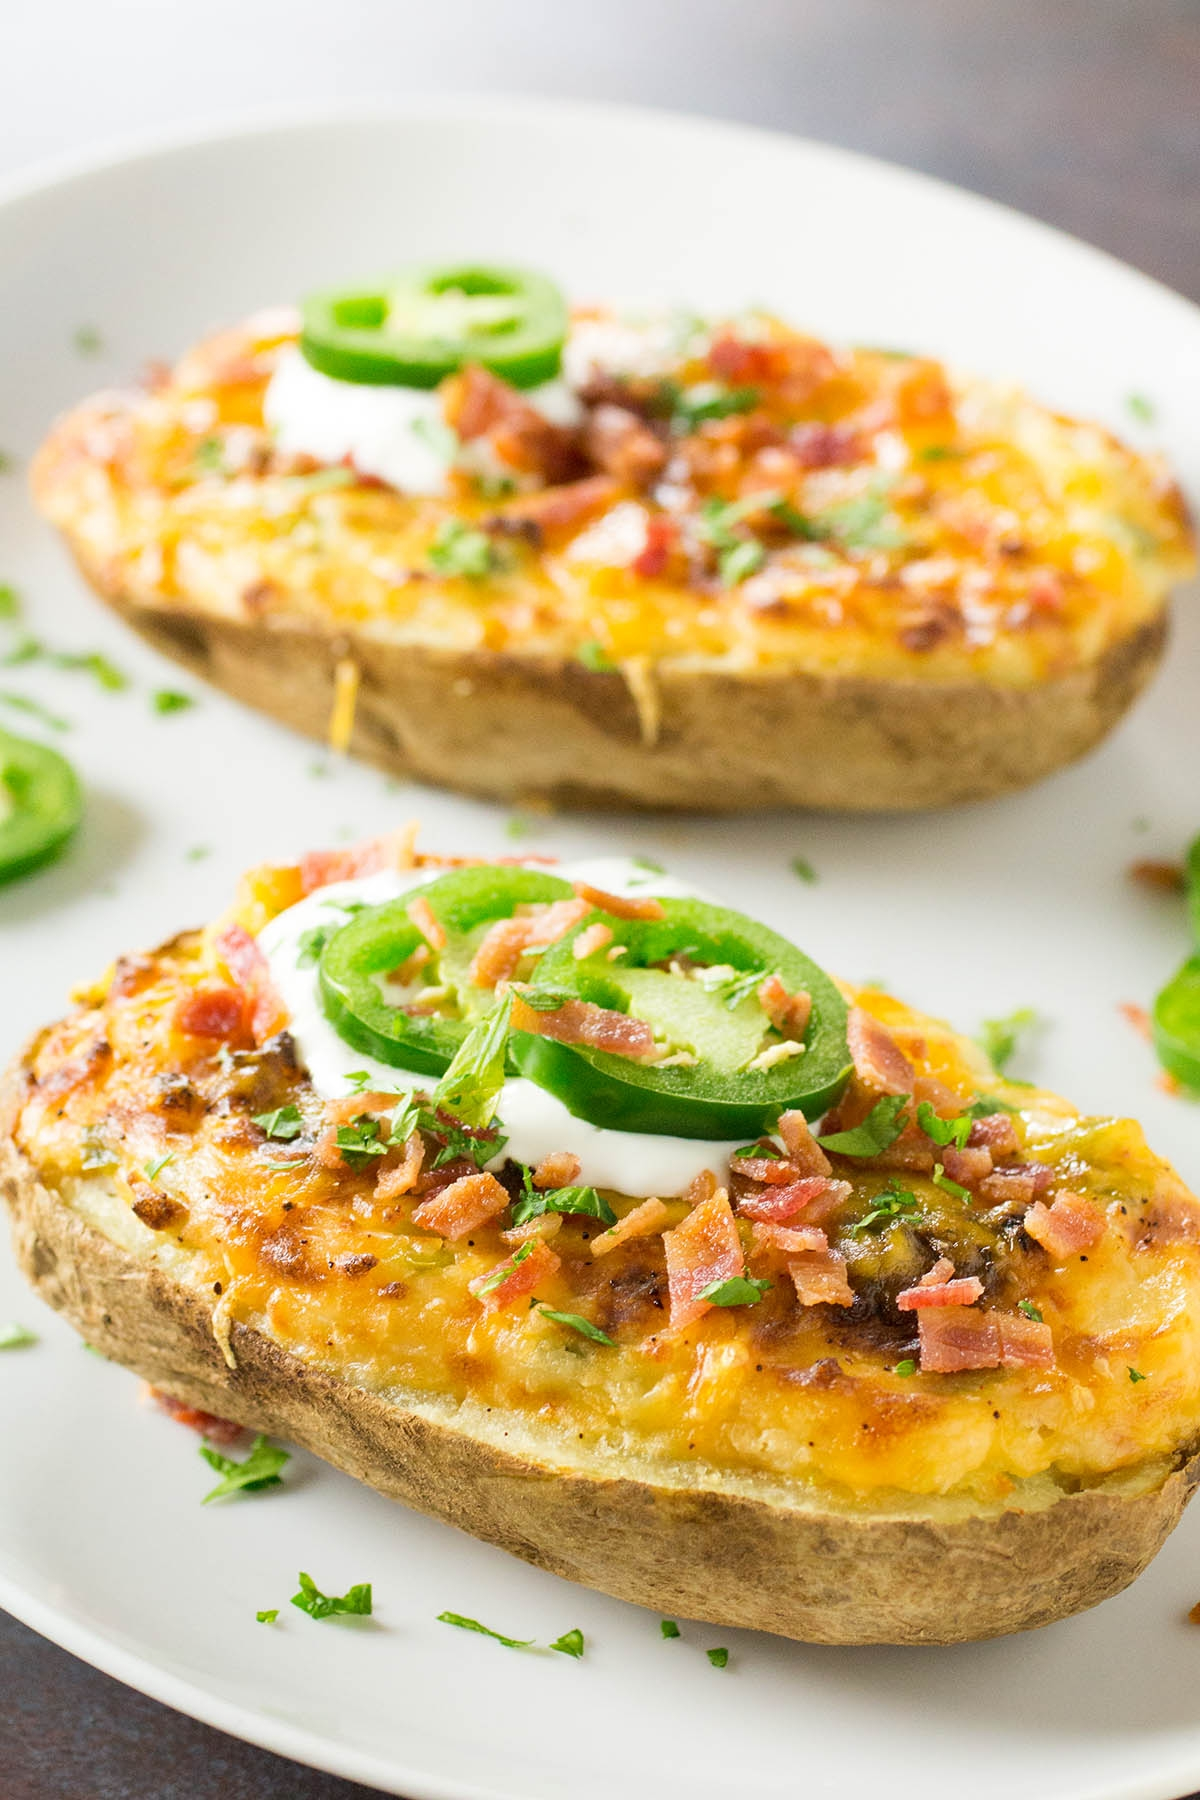 Jalapeno Popper Twice Baked Potatoes